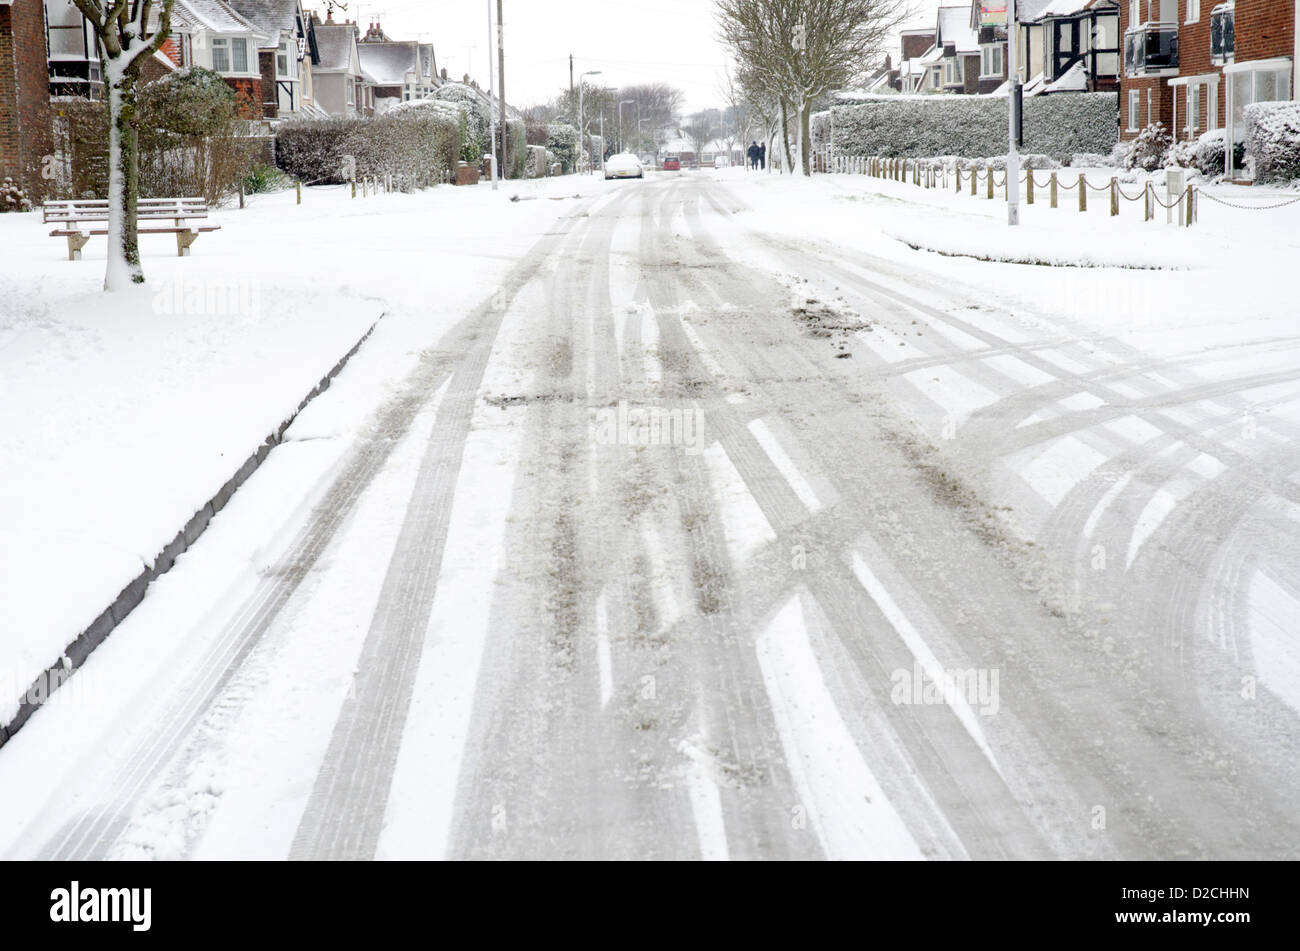 Road covered in snow with tire tracks after a snow fall. - Stock Image